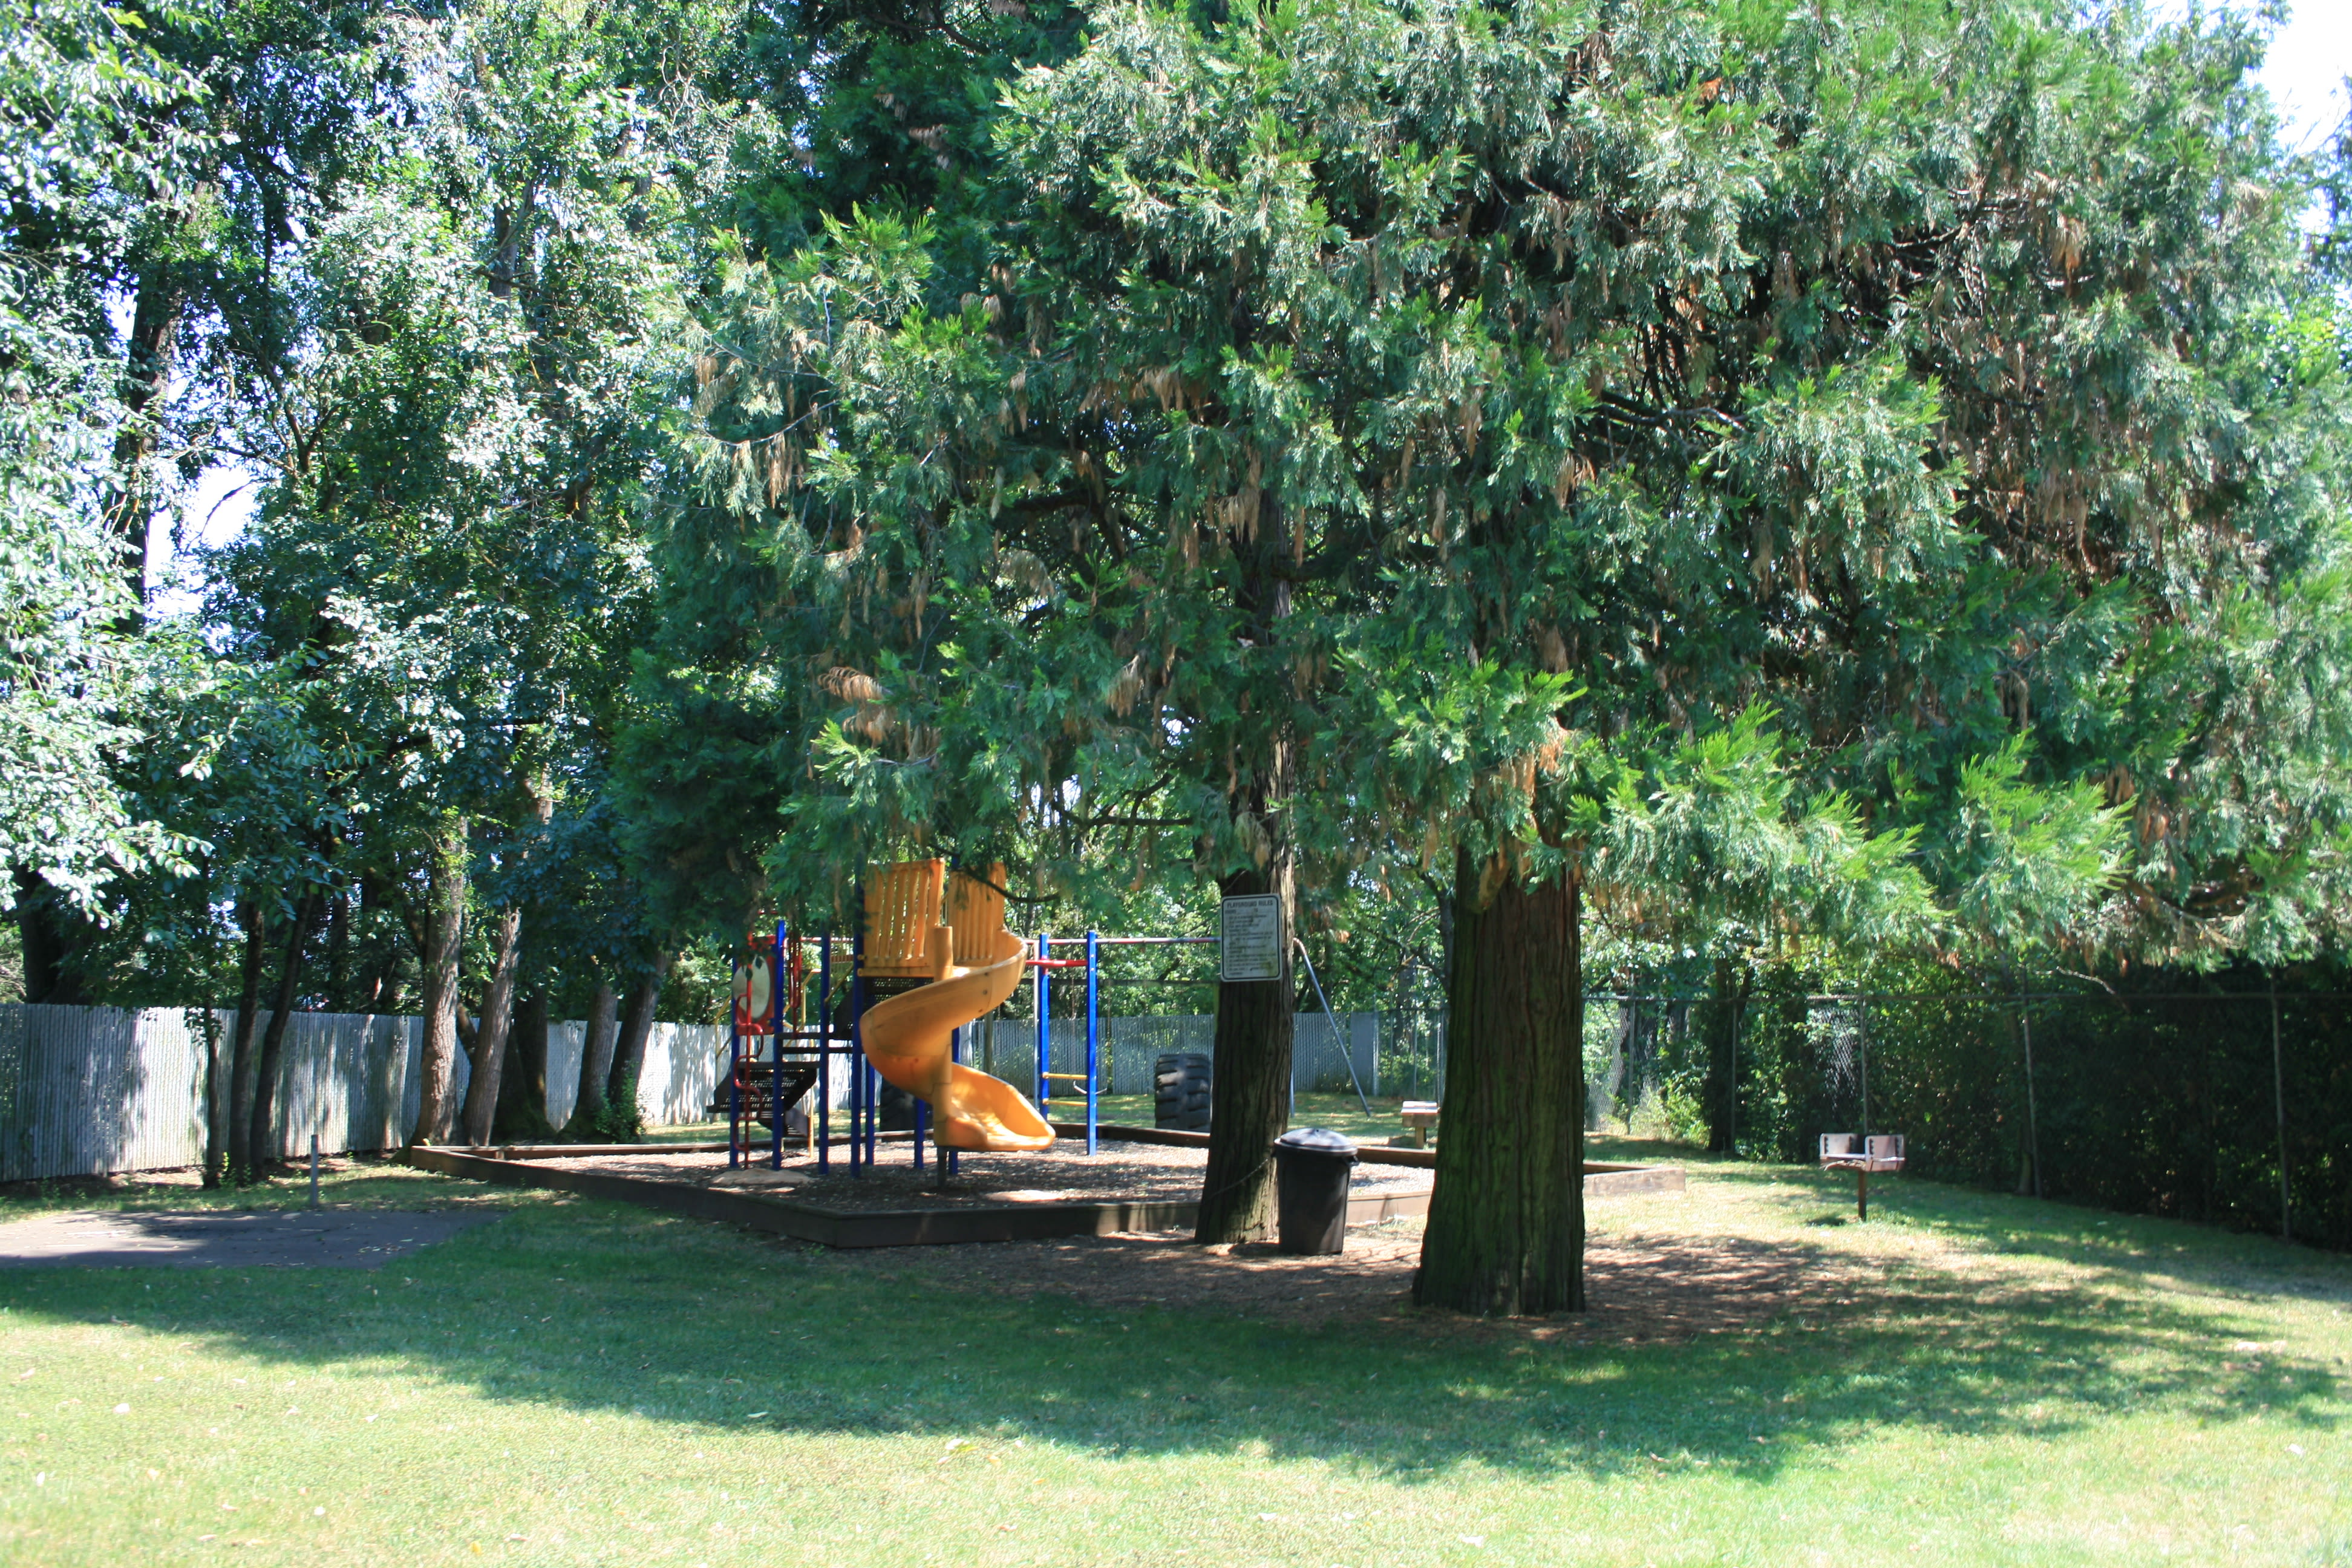 Fountain Court offers a playground in Springfield, Oregon